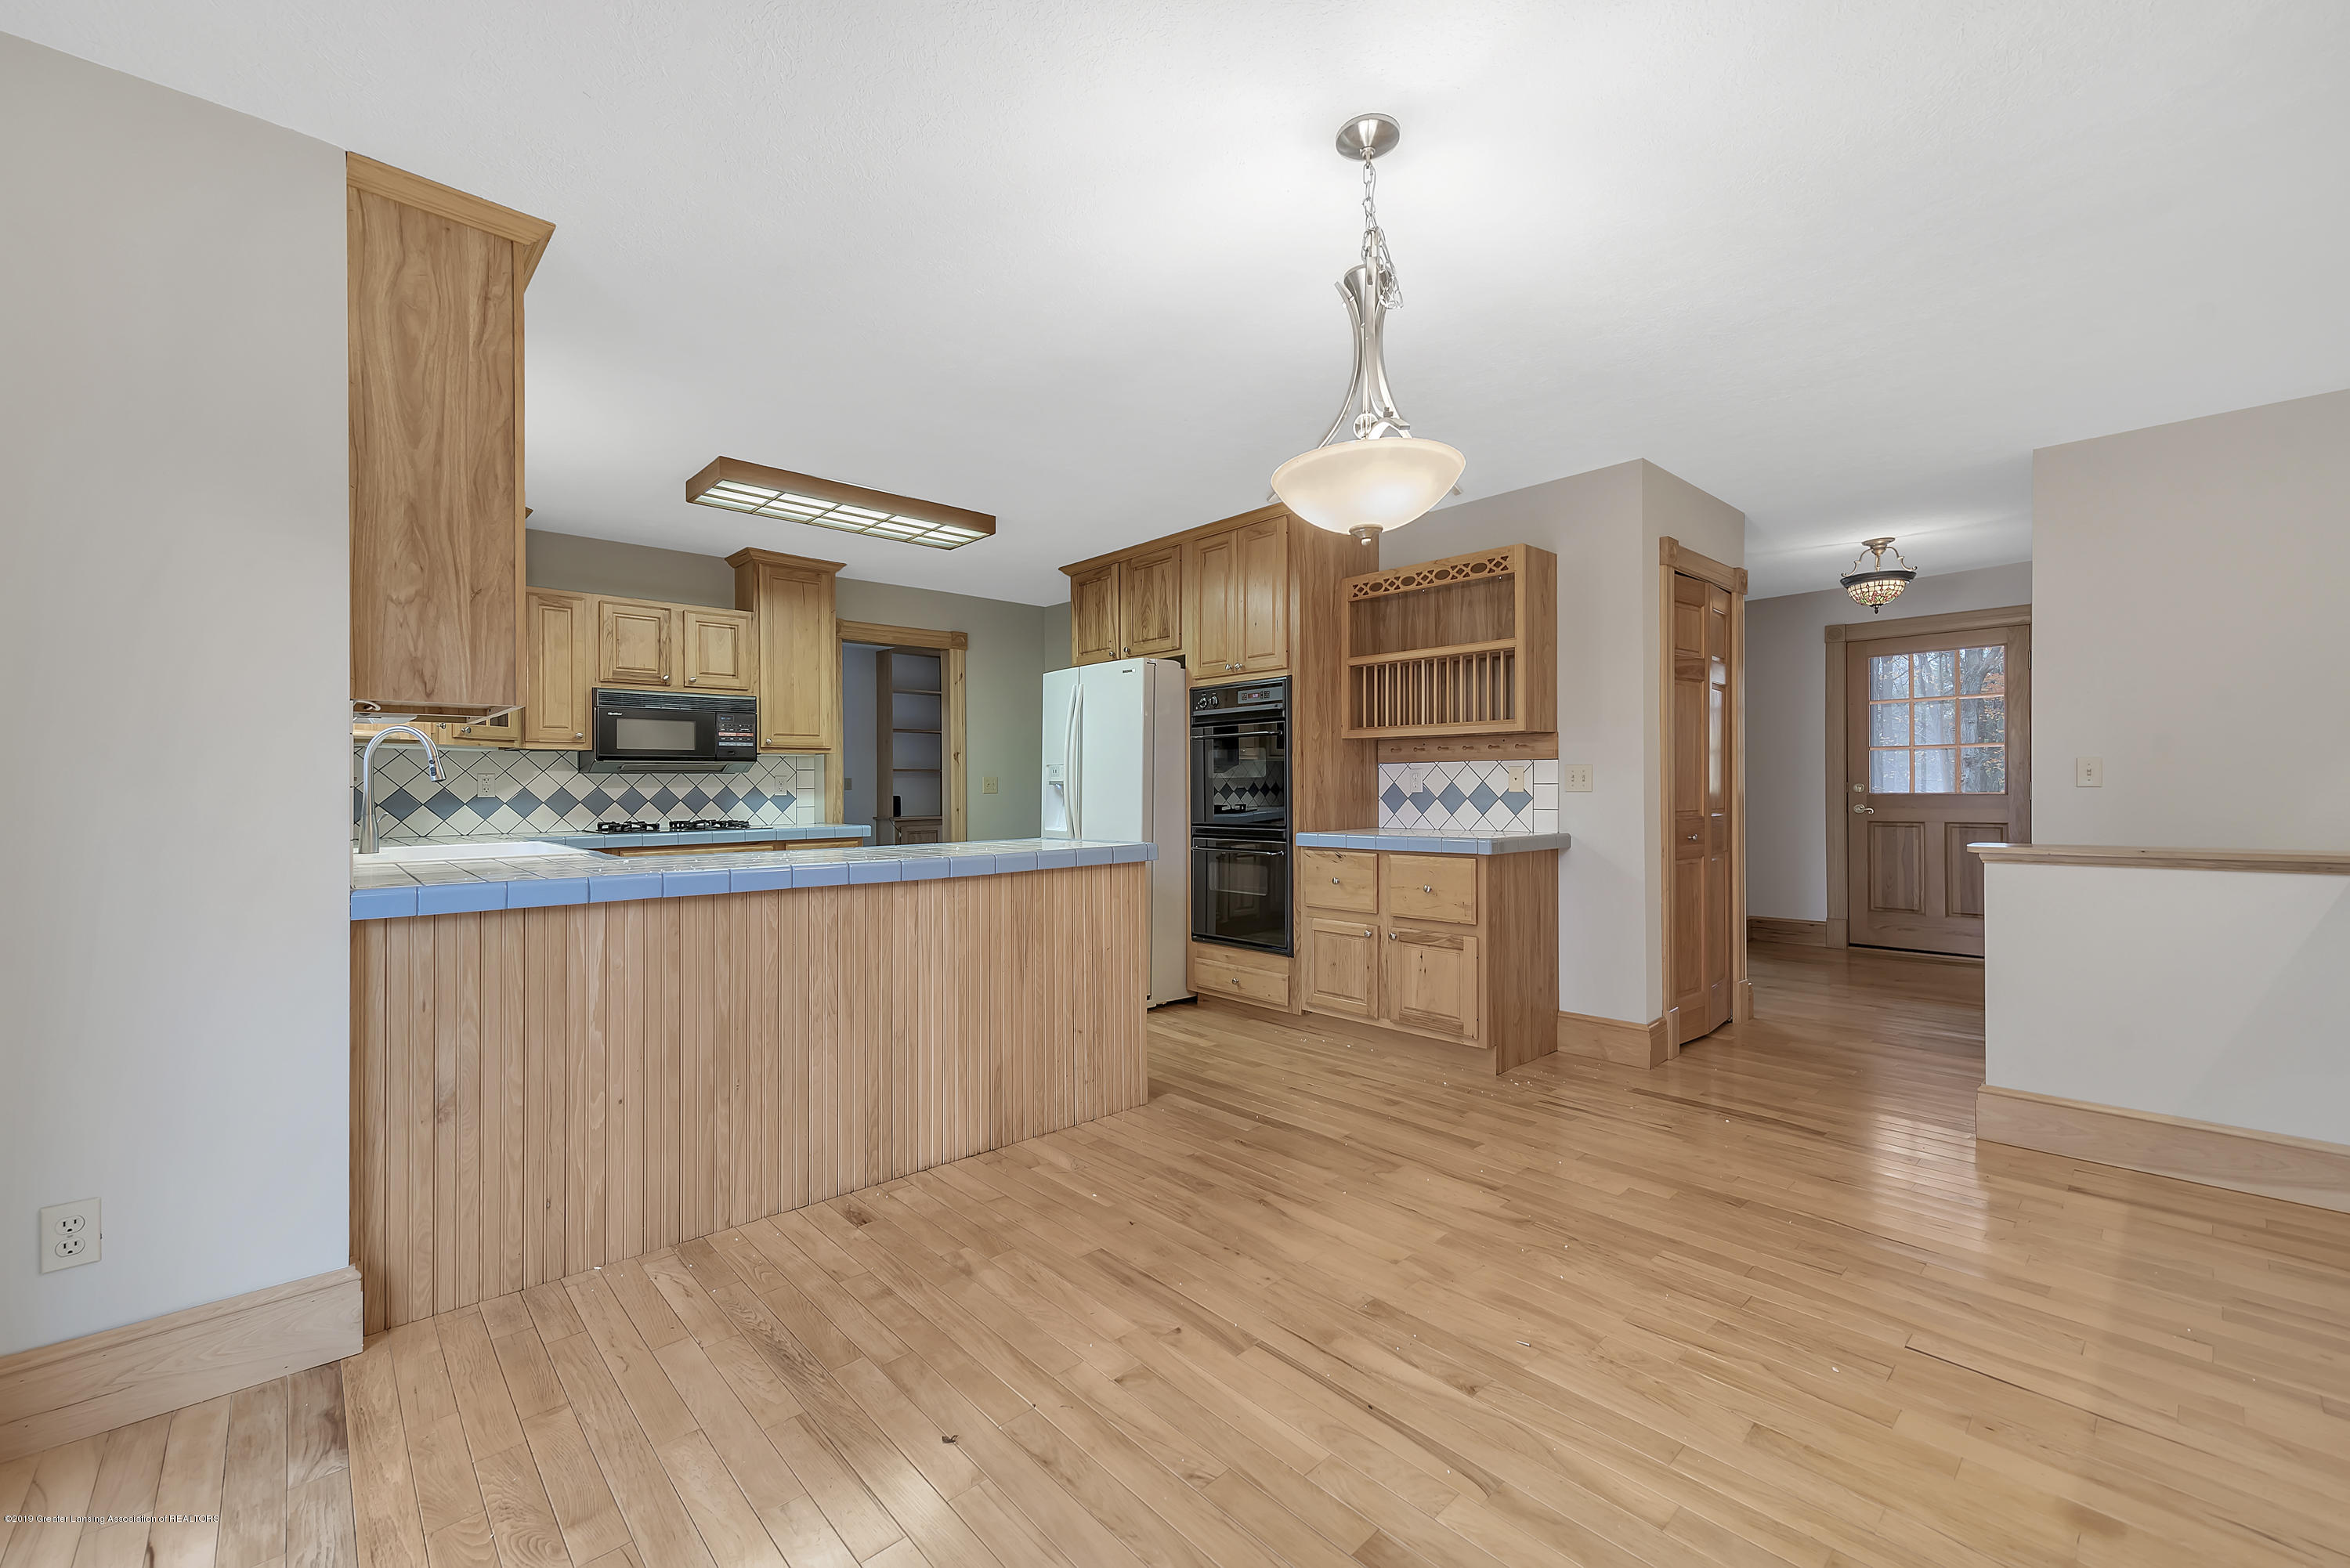 10865 Barnes Rd - 10865-Barnes-Rd-WindowStill-Real-Estate- - 16